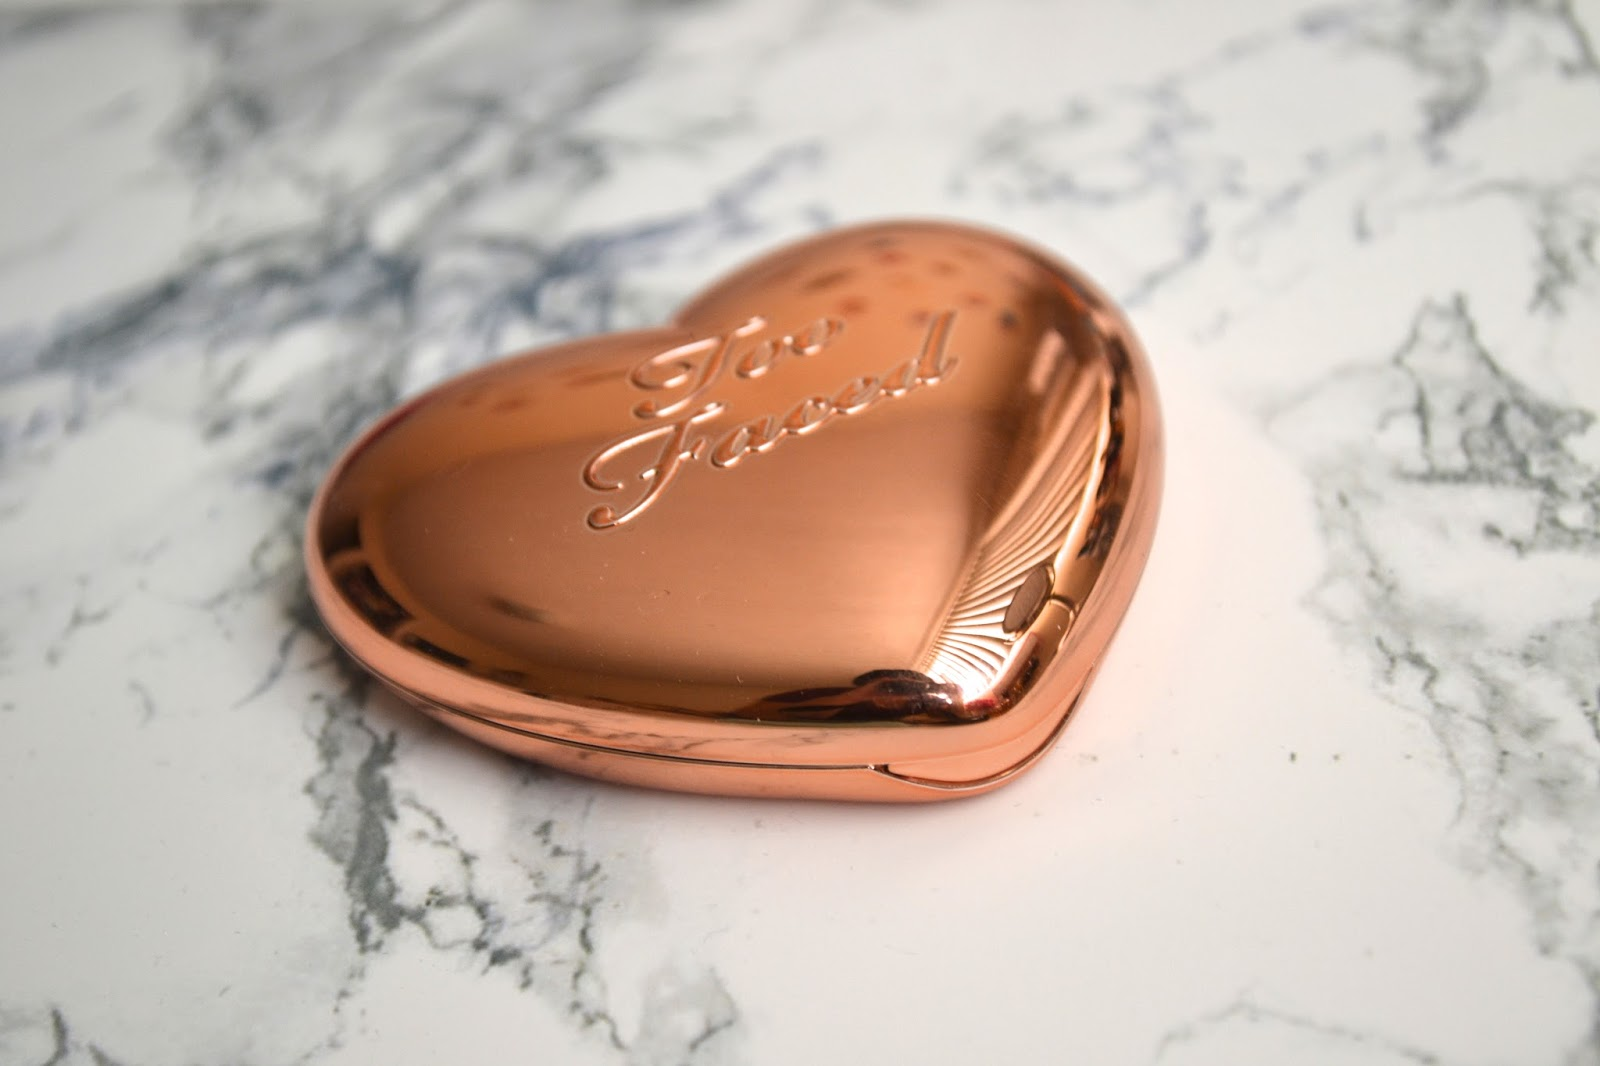 Aquaheart Too Faced Love Light Prismatic Highlighter In